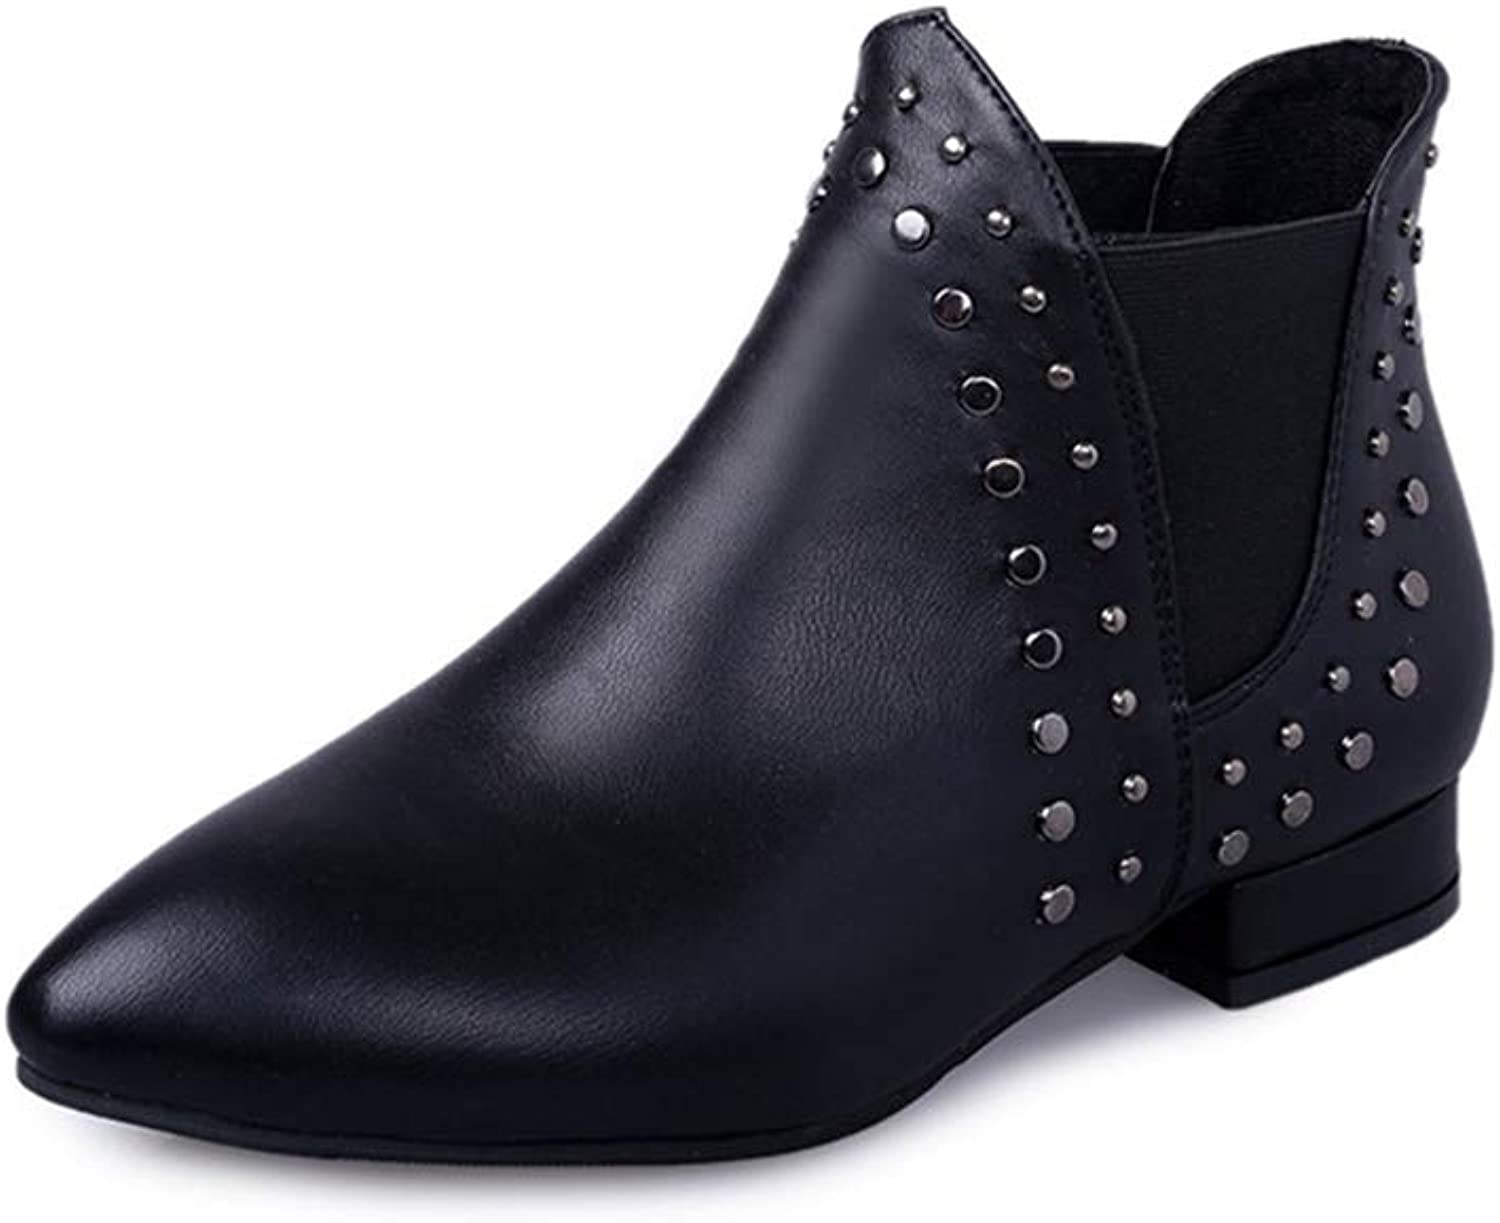 Women's Fashion Rivet Pointed Toe Ankle Boots Comfortable Flat Martin Boots Side Elastic Booties